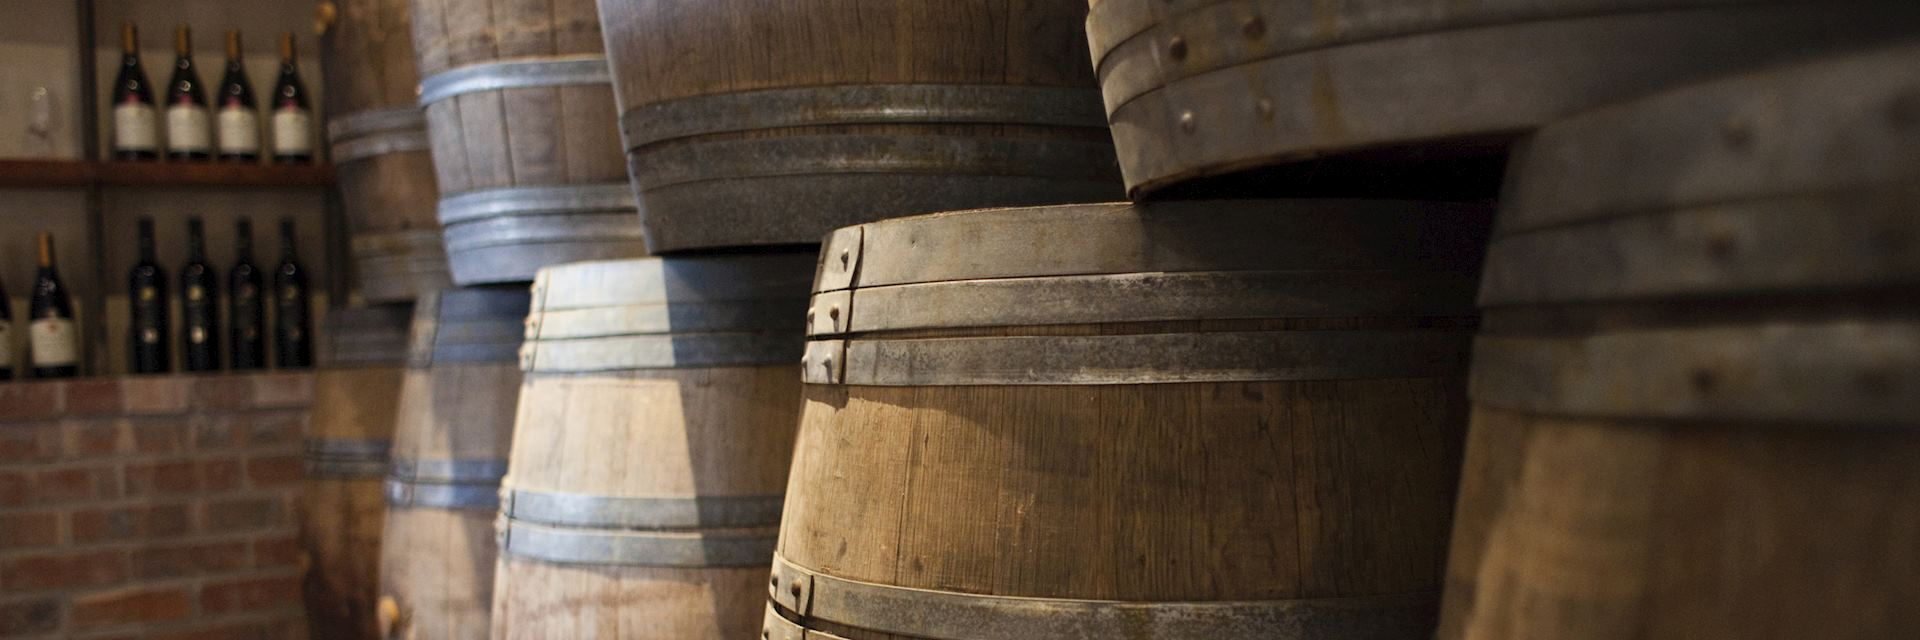 Wine barrels, Cape Region